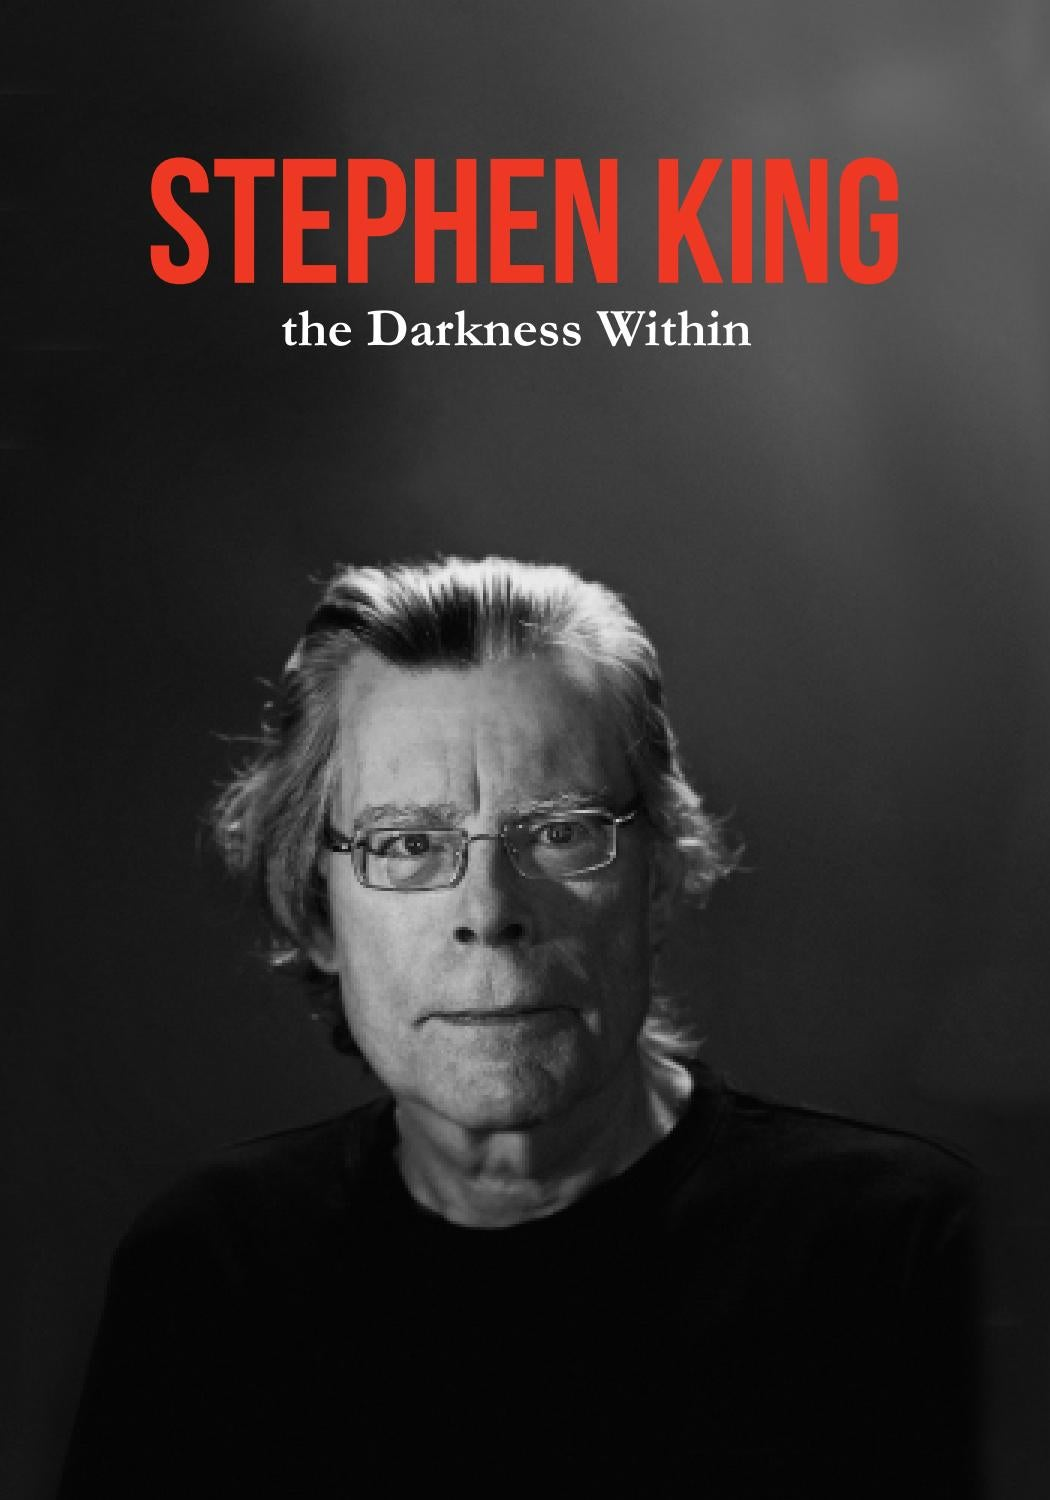 Stephen King Biography By Nswallow Issuu